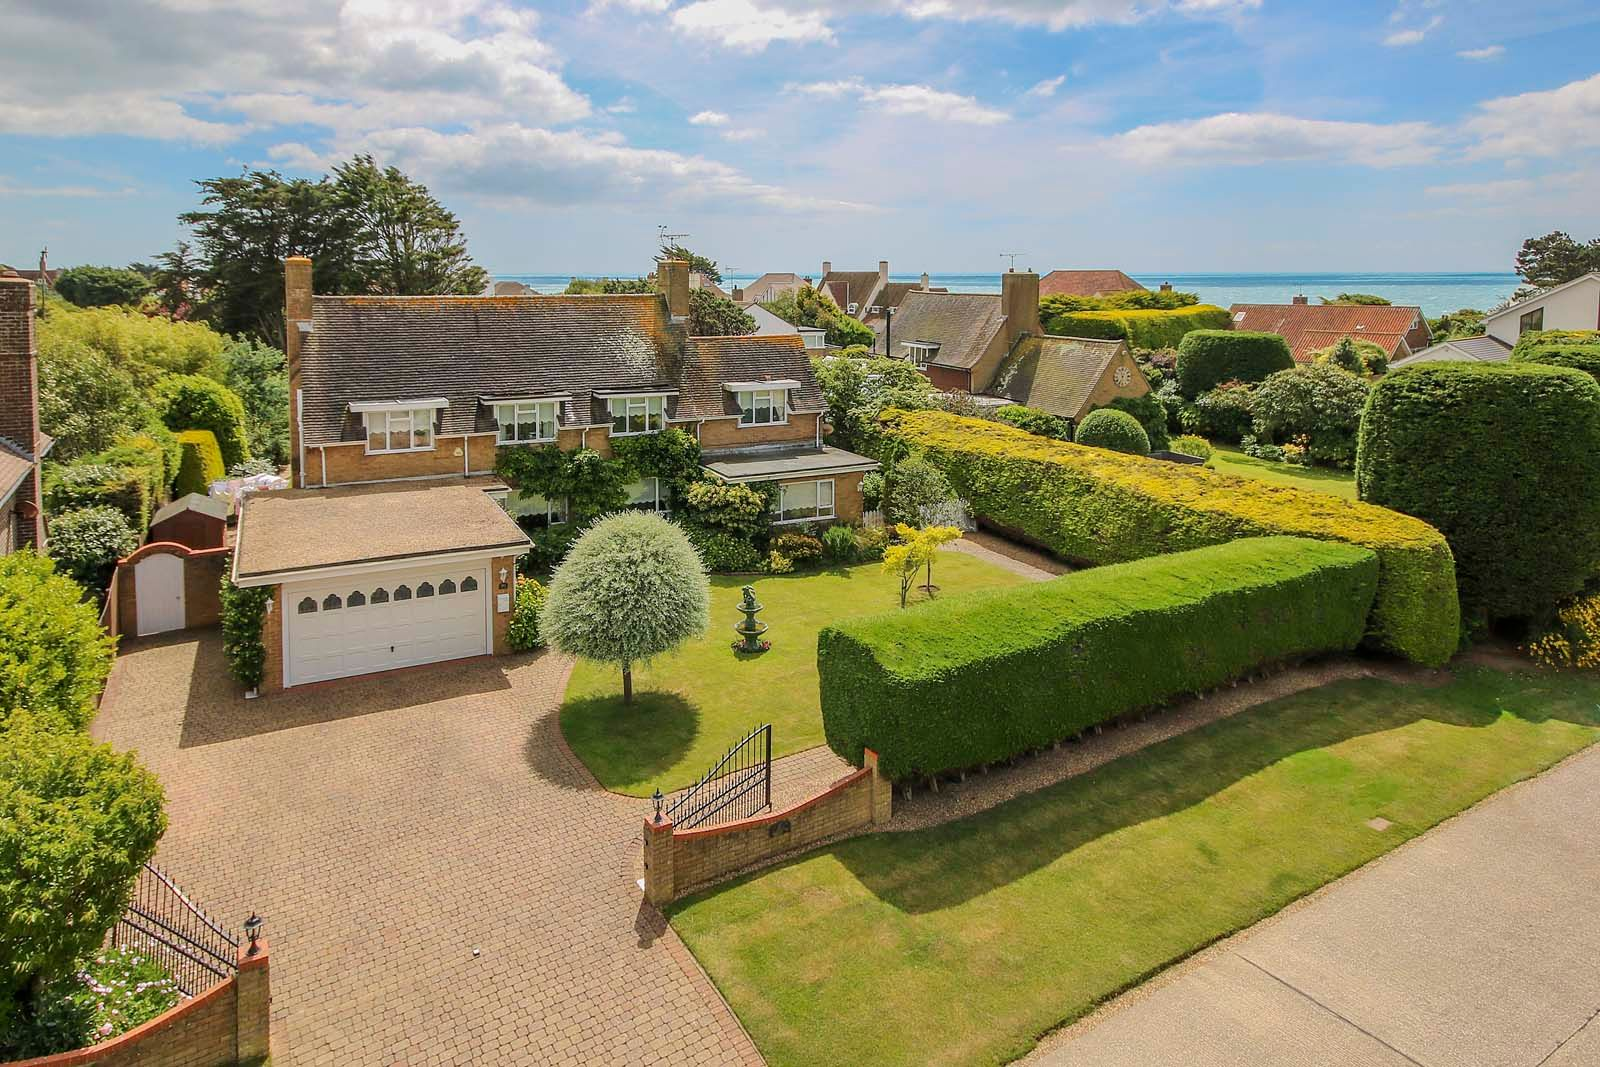 5 bed house for sale in The Ridings COMP 2019 1